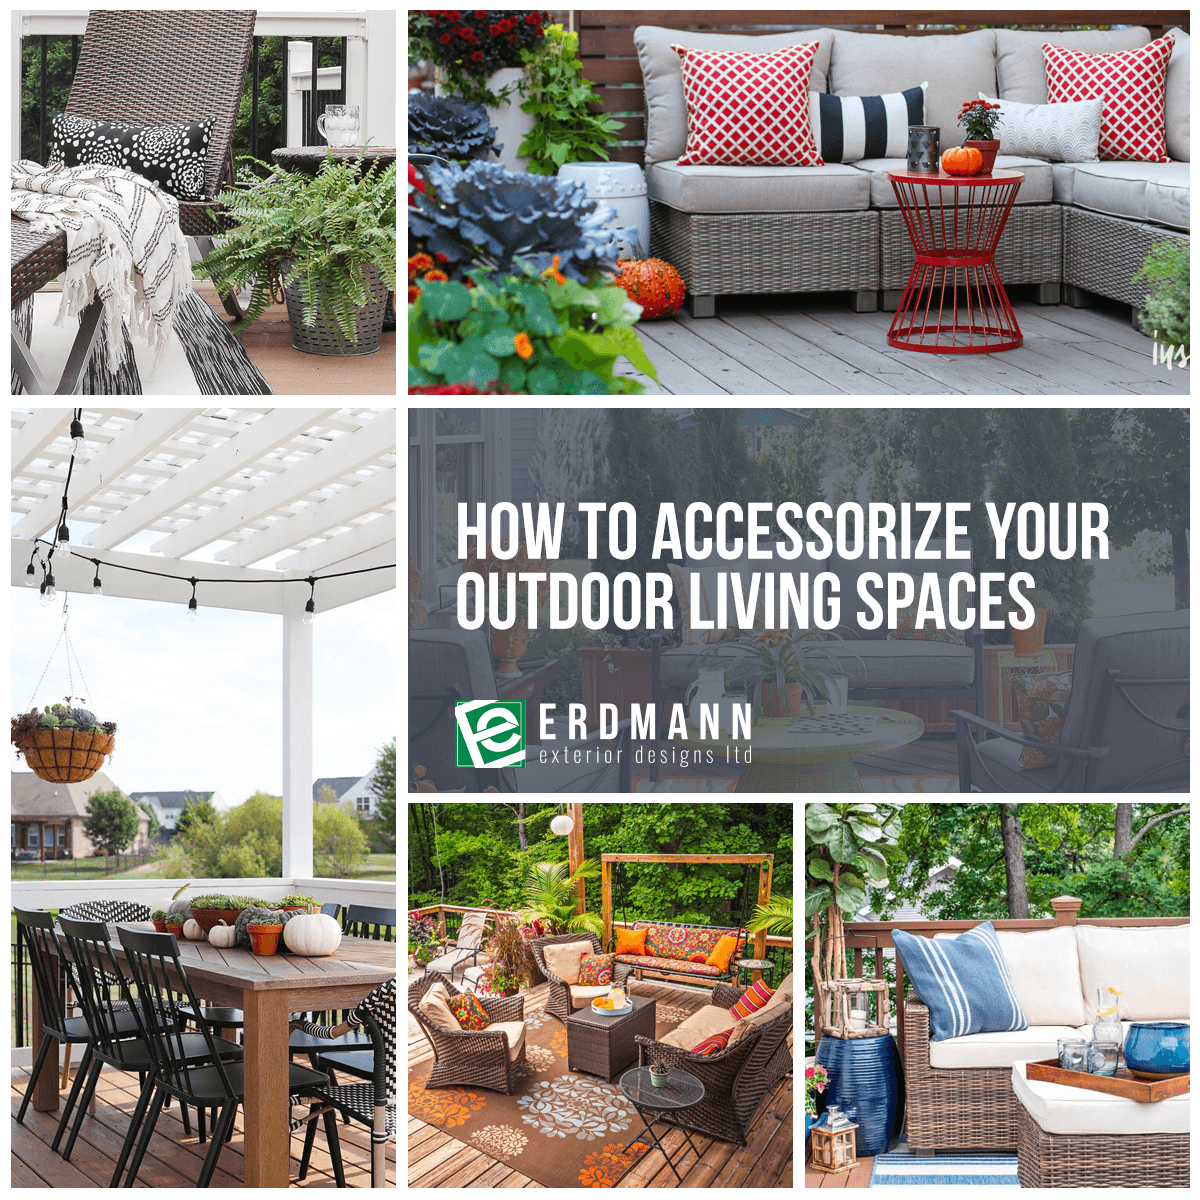 Outdoor Living Space Design how to accessorize your outdoor living spaces | erdmann